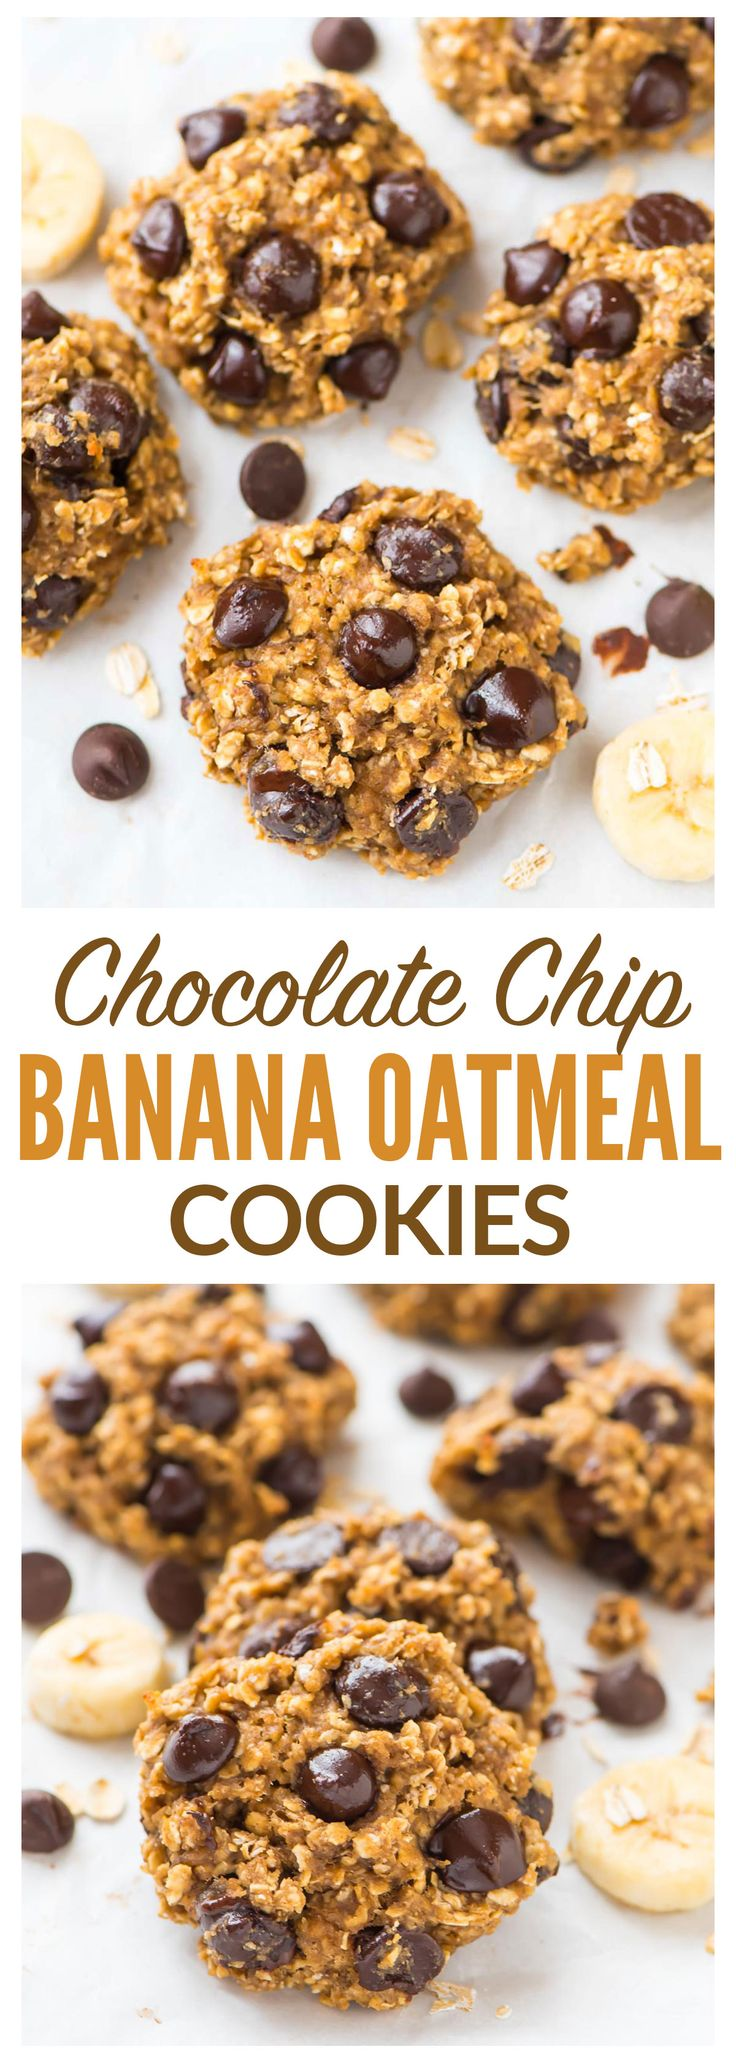 Oso Simple Squishy Banana : 662 best images about Cookie Recipes on Pinterest Pudding cookies, Sandwich cookies and Cookie ...